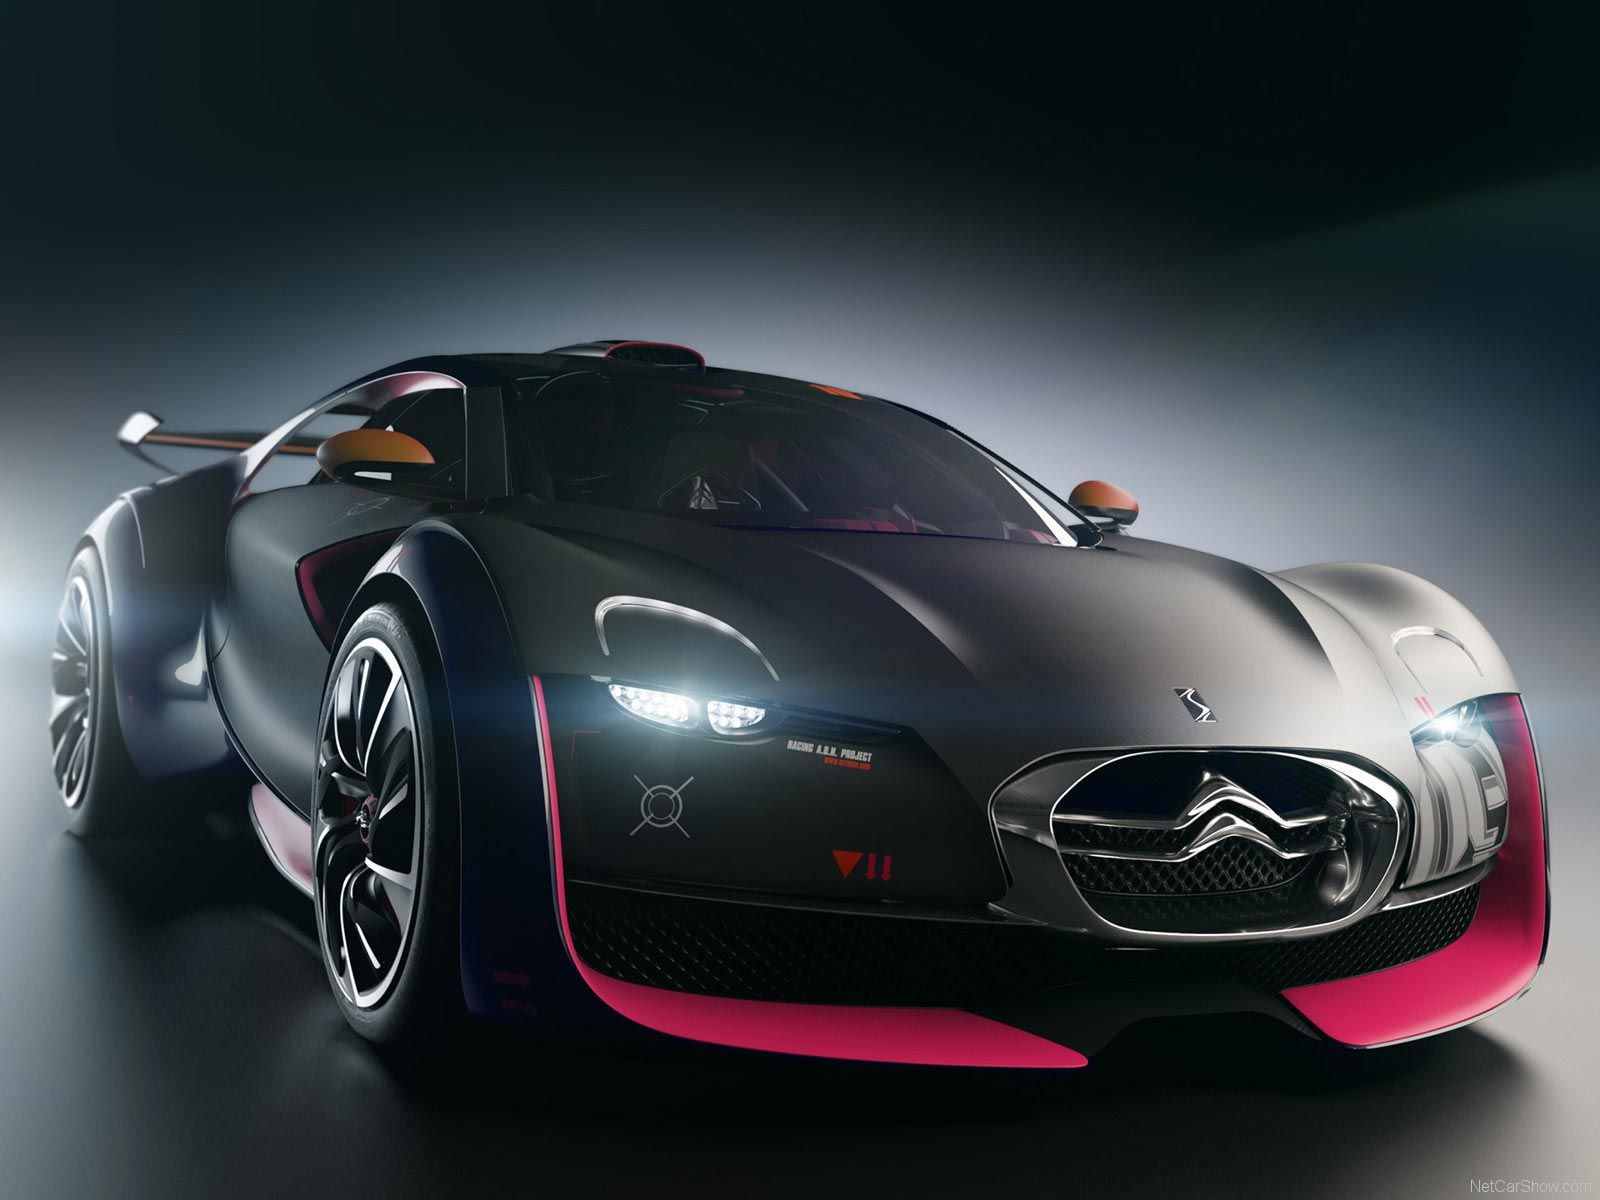 Citroen survolt concept electric sports car http www youtube com cool